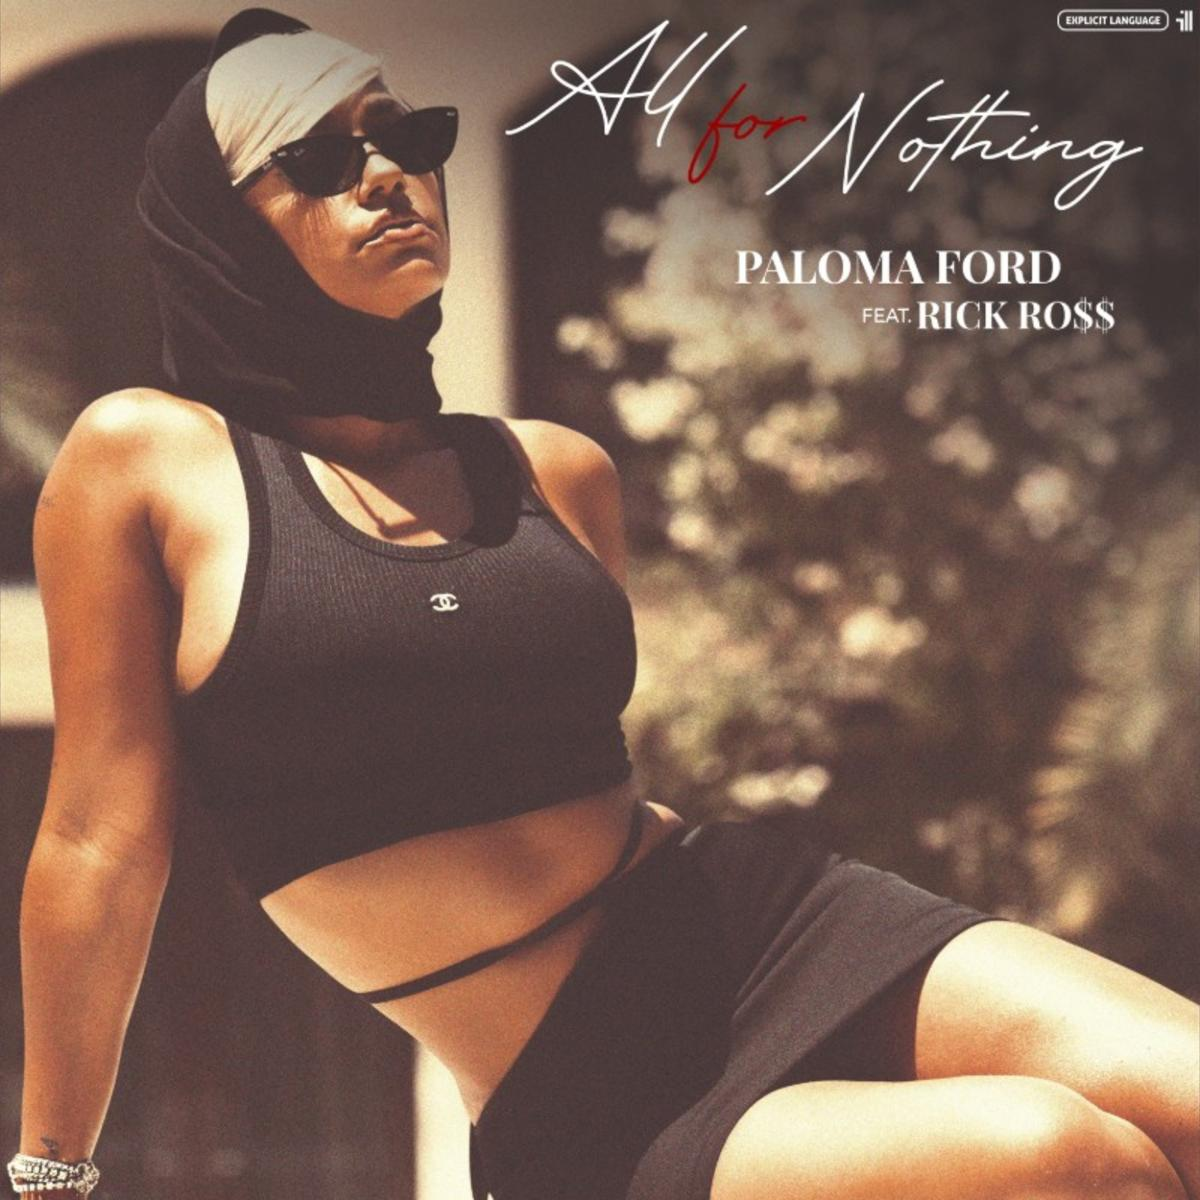 Paloma Ford Ft. Rick Ross - ALL FOR NOTHING